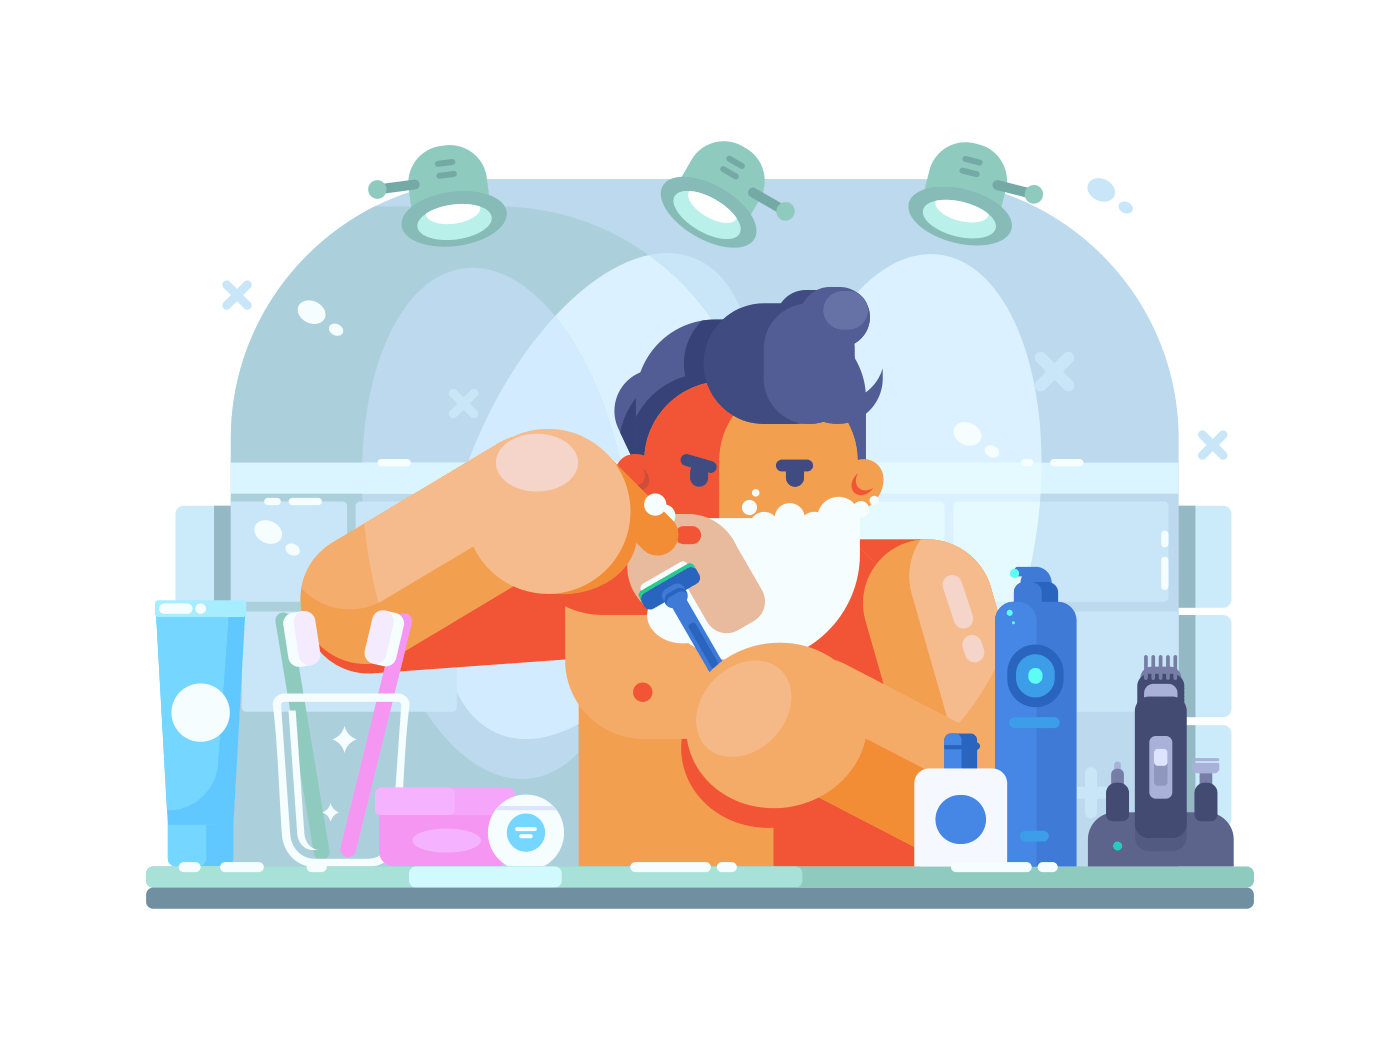 Man in bathroom shaves illustration